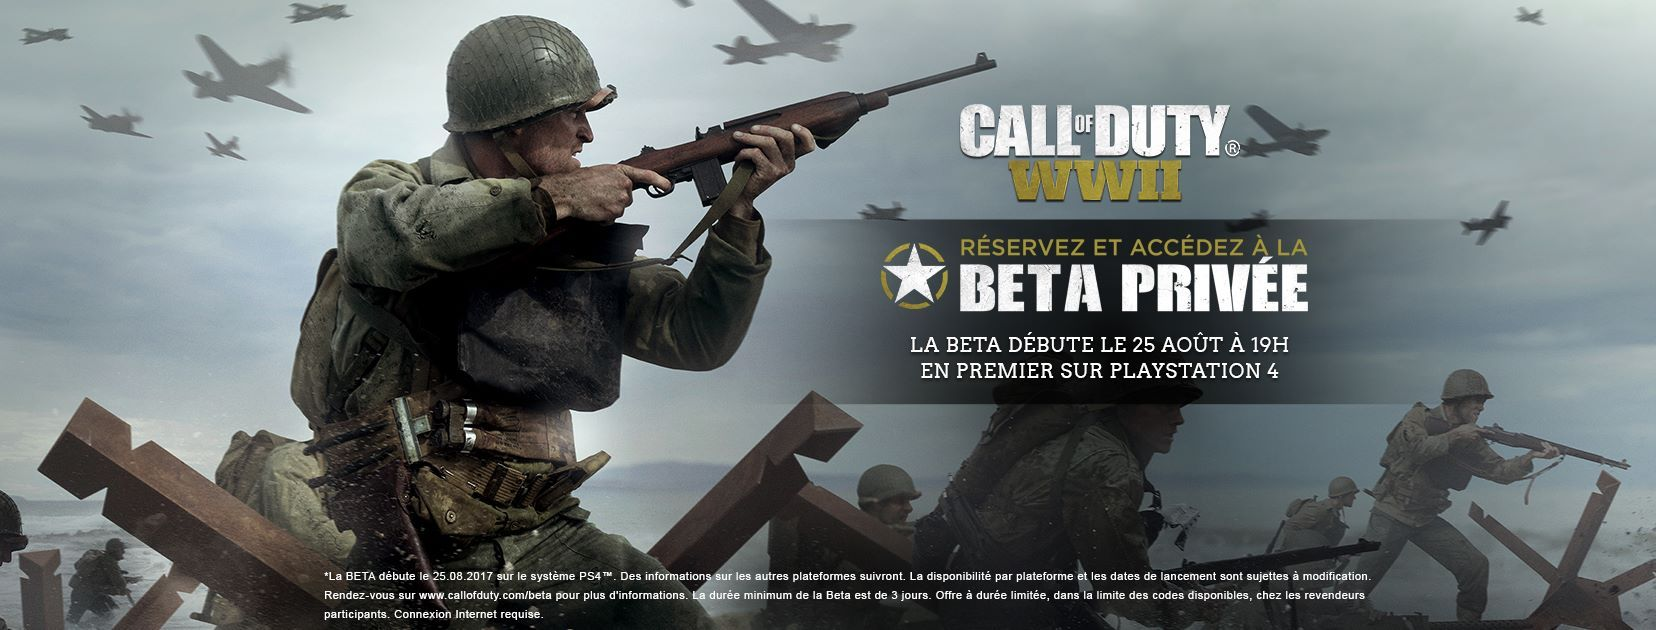 Illustration de l'article sur Call of Duty WWII — J-3 avant la BETA PS4